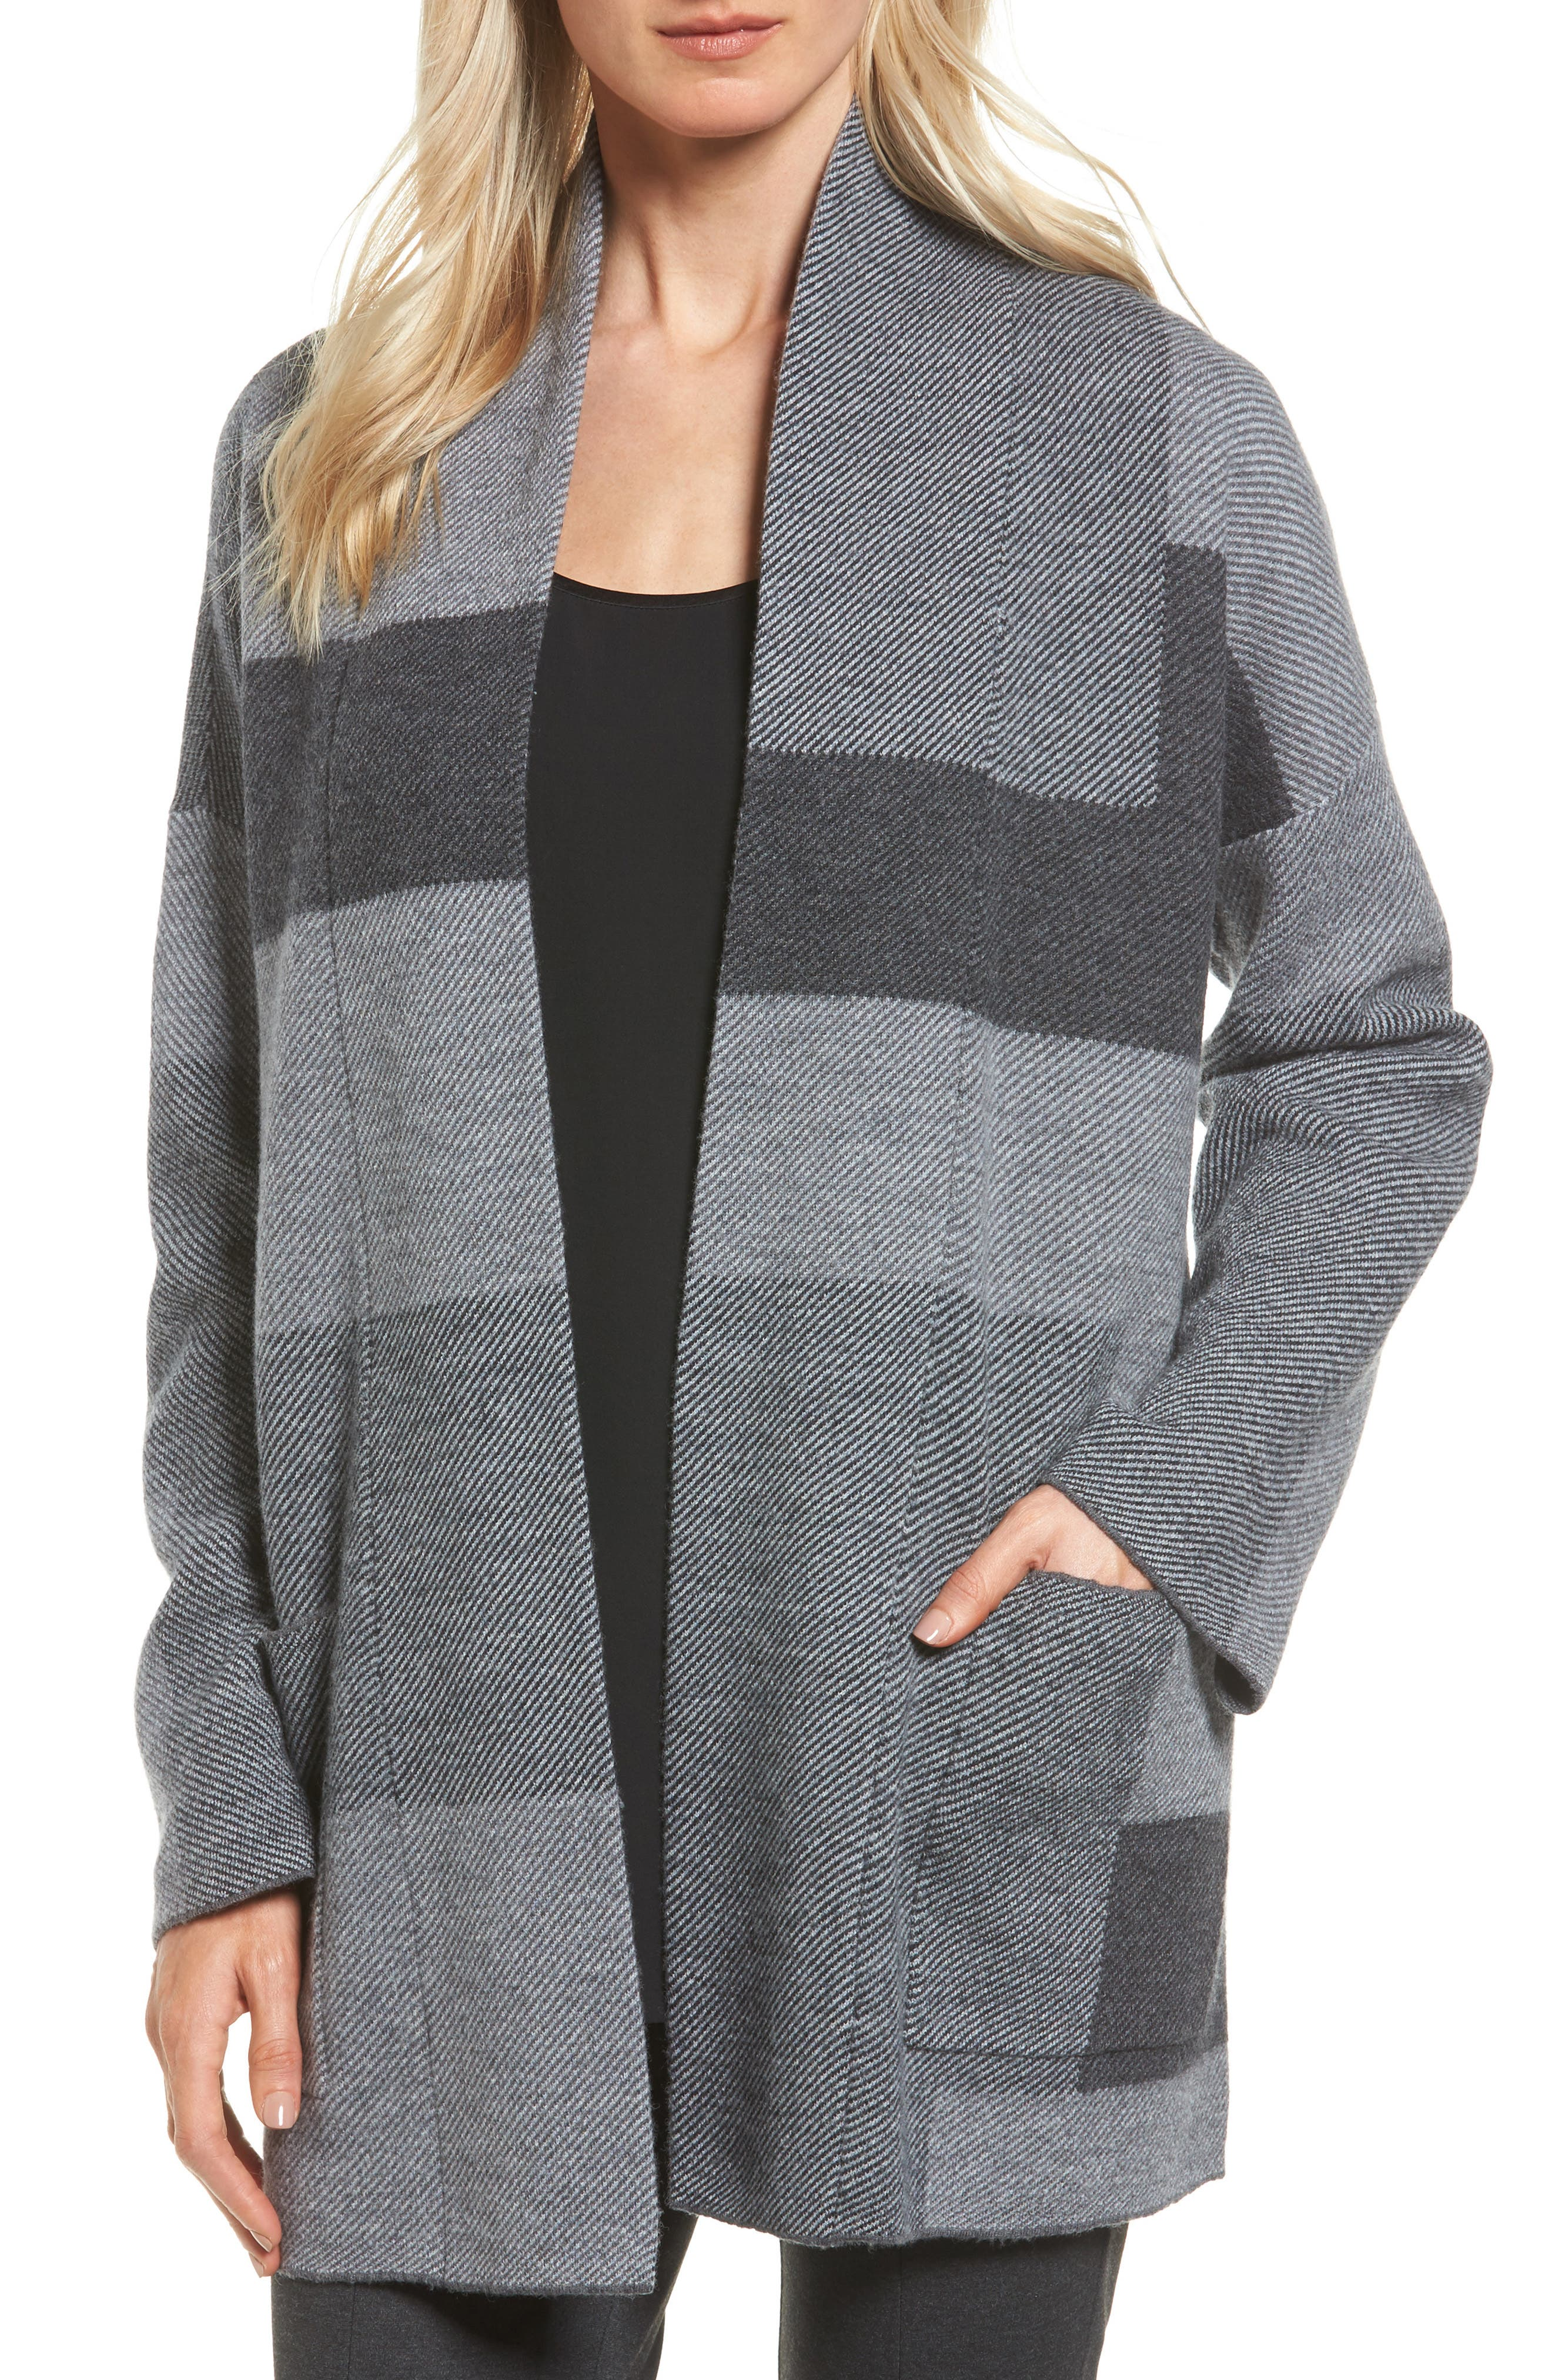 Eileen Fisher Colorblock Merino Wool Coat (Regular & Petite)